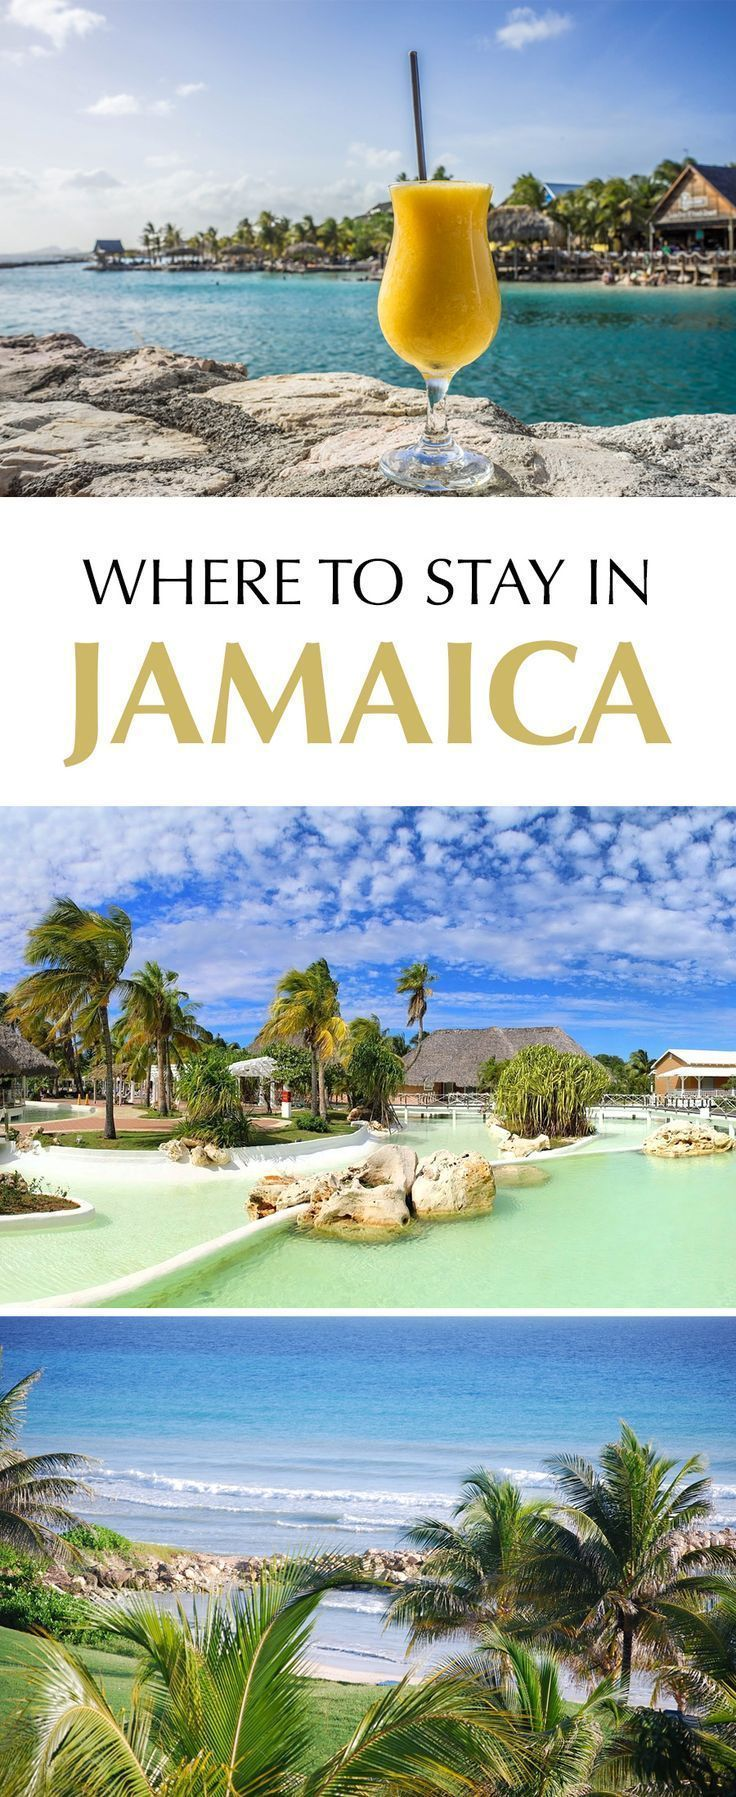 from Cayson caribbean gay guide travel